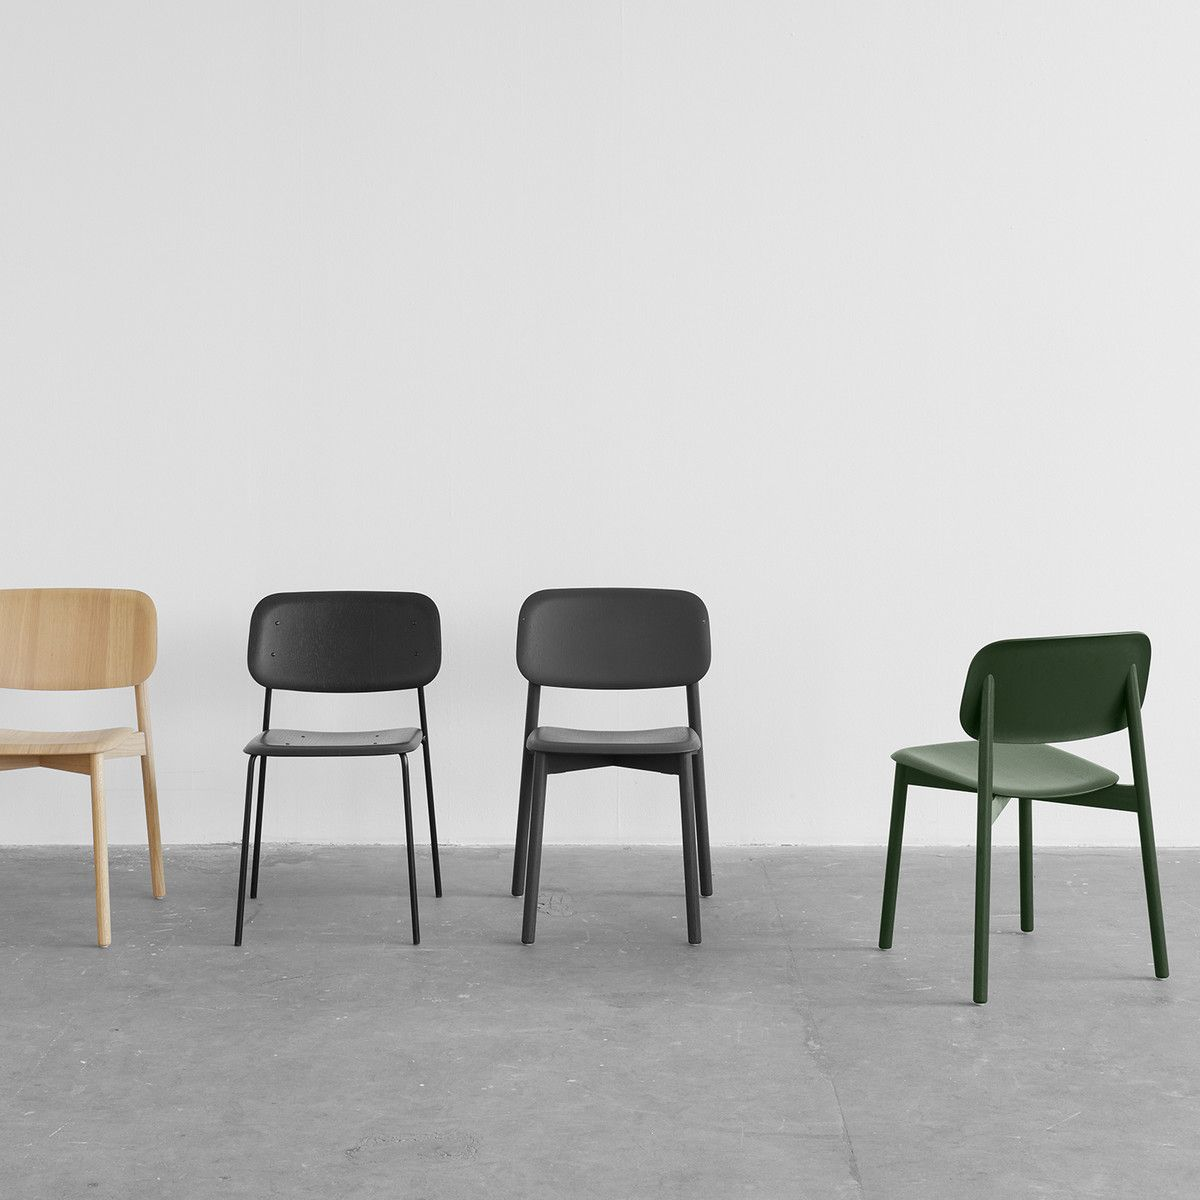 Buy The Soft Edge Chair By Hay In Our Shop Esszimmerstuhl Moderne Stühle Möbeldesign